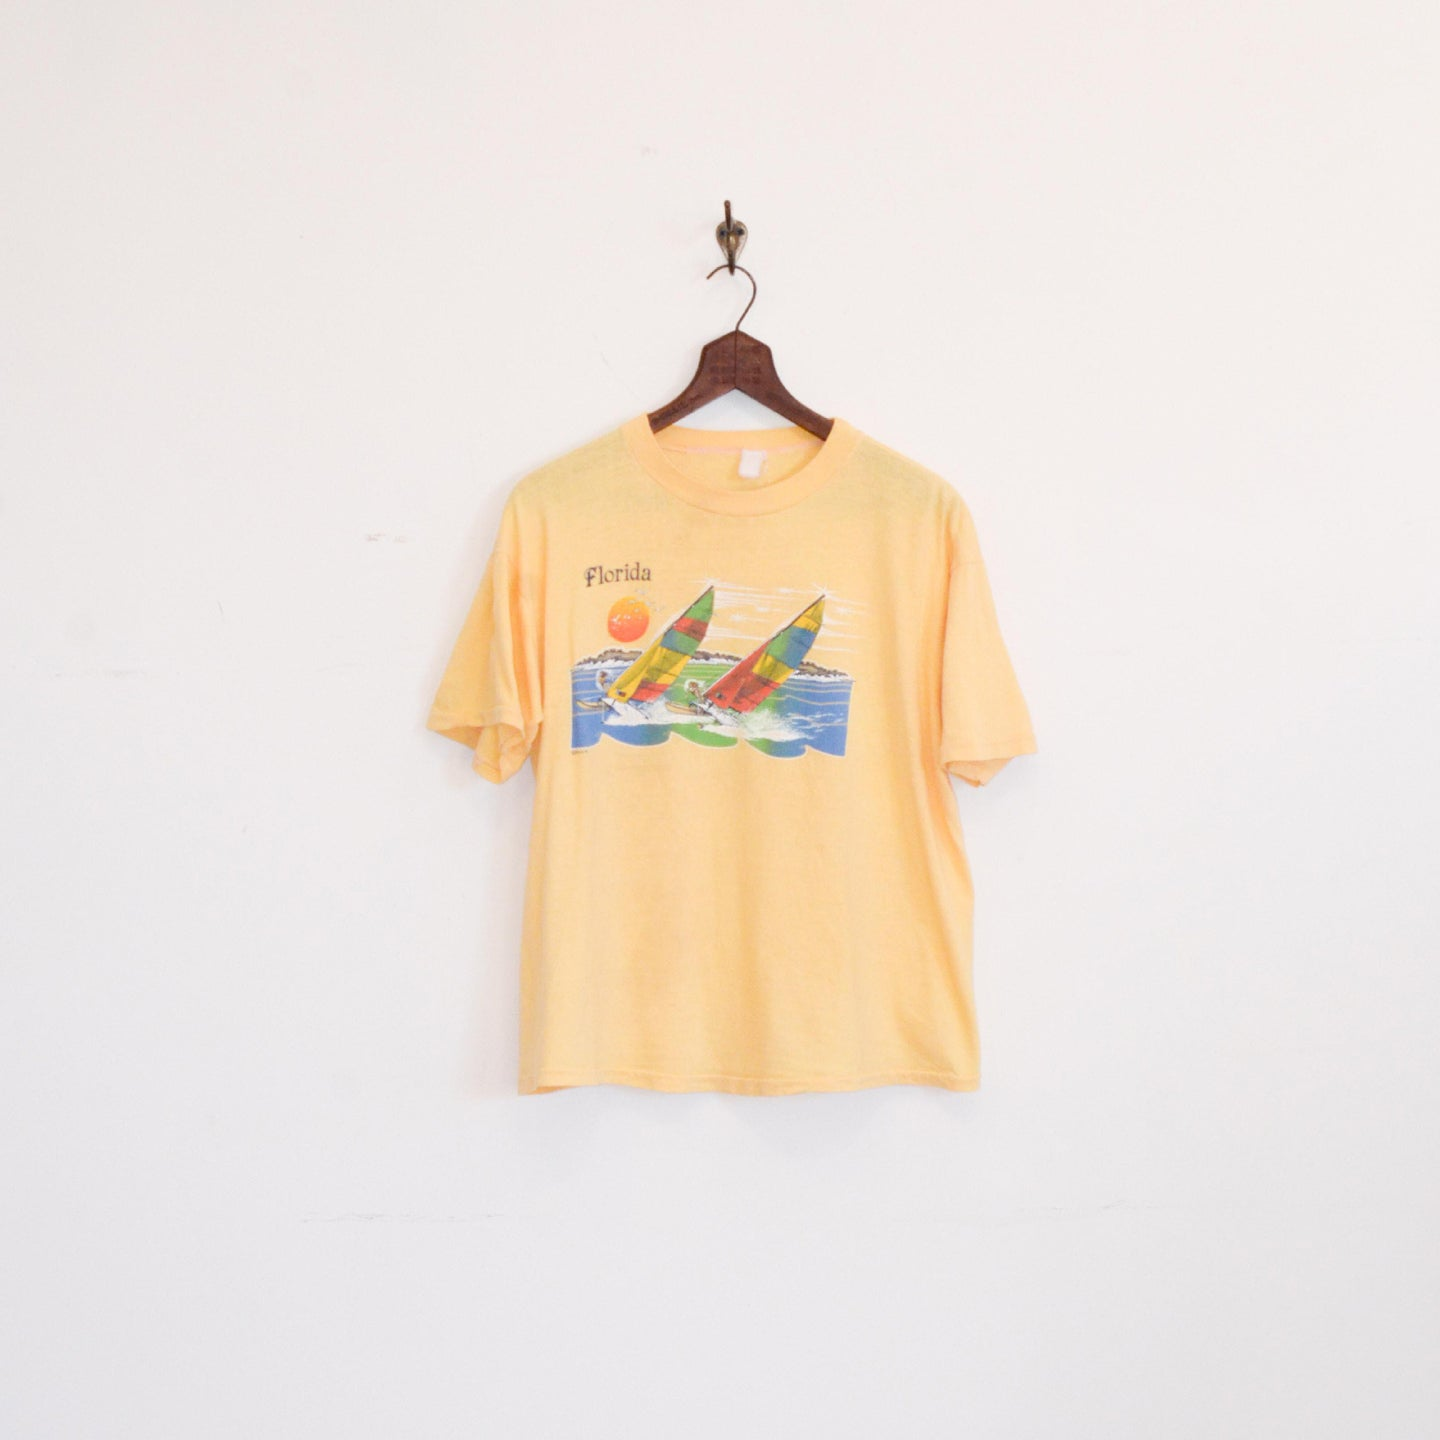 Unknown Brand - Florida Souvenir Print Tee Shirt